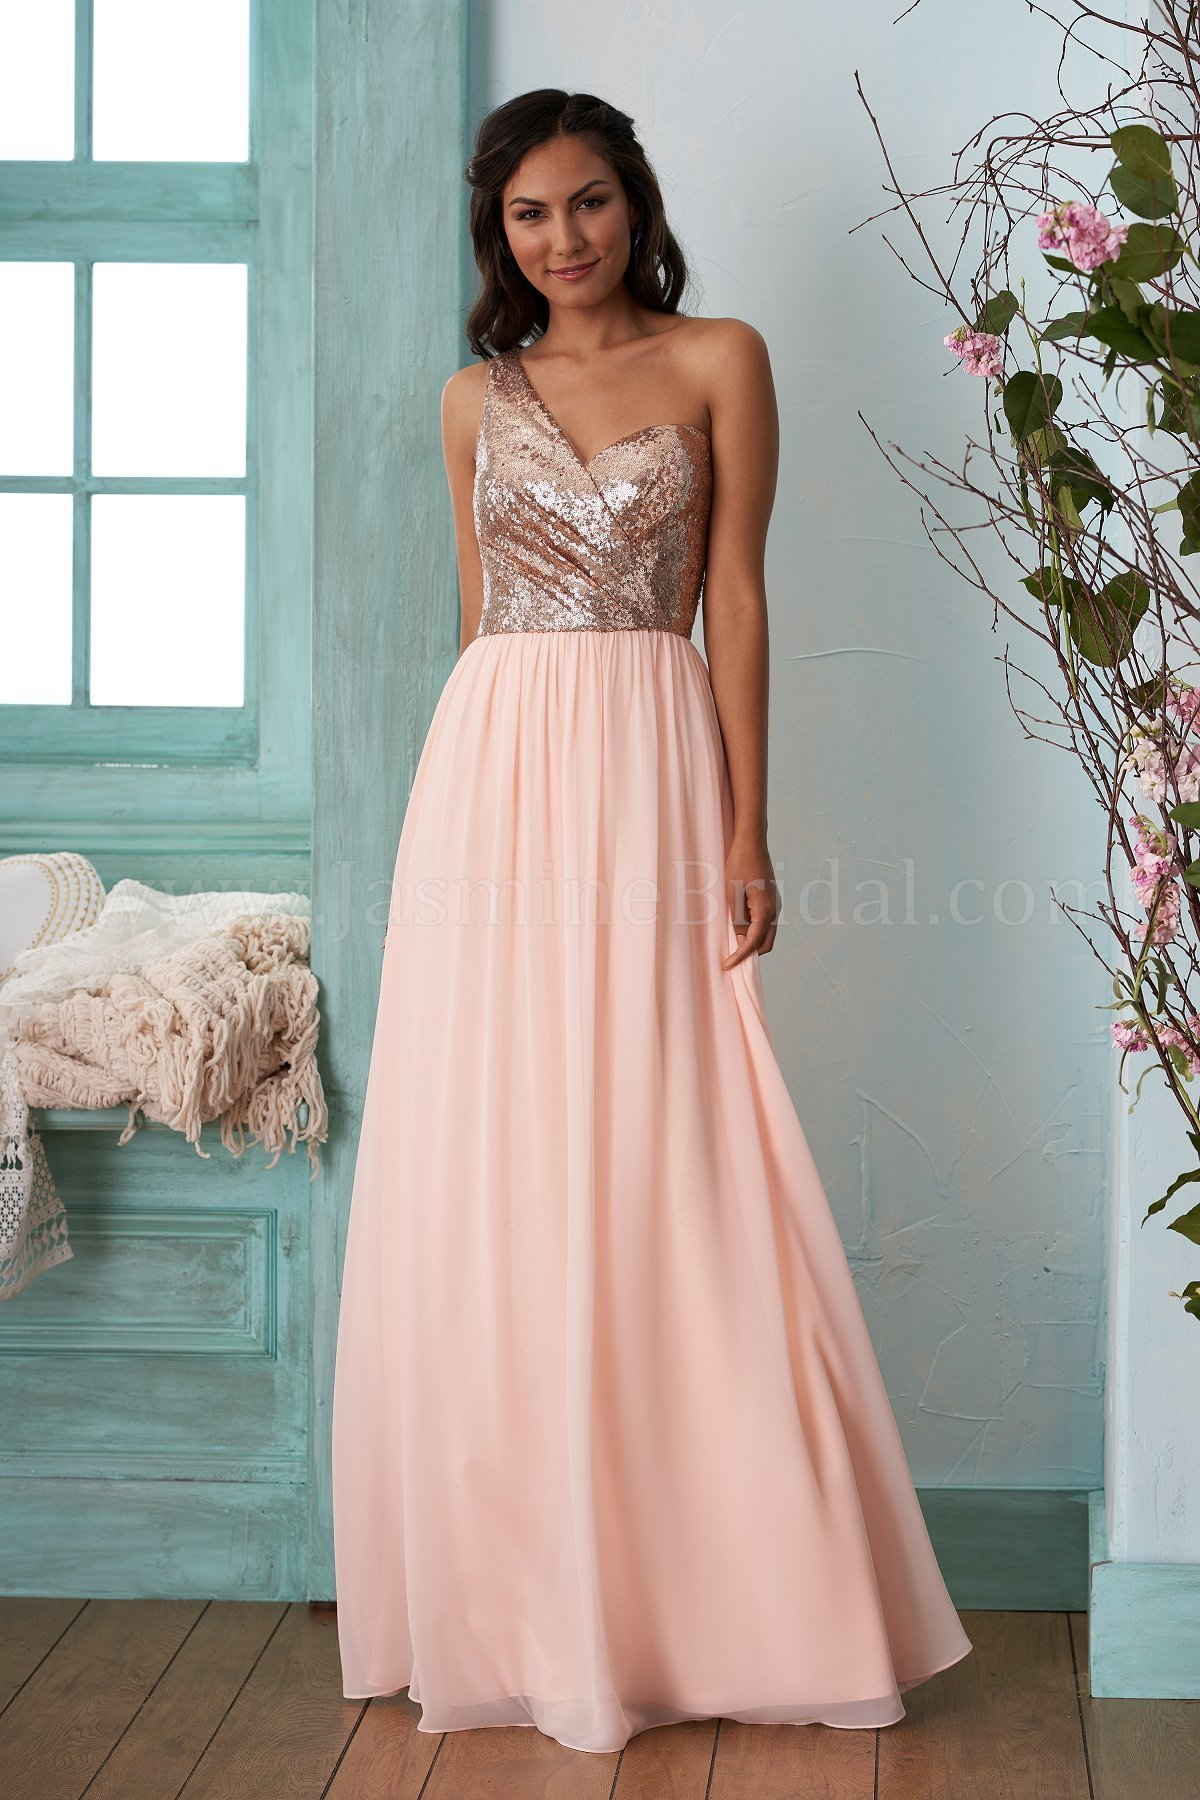 bridesmaid-dresses-B203013-F